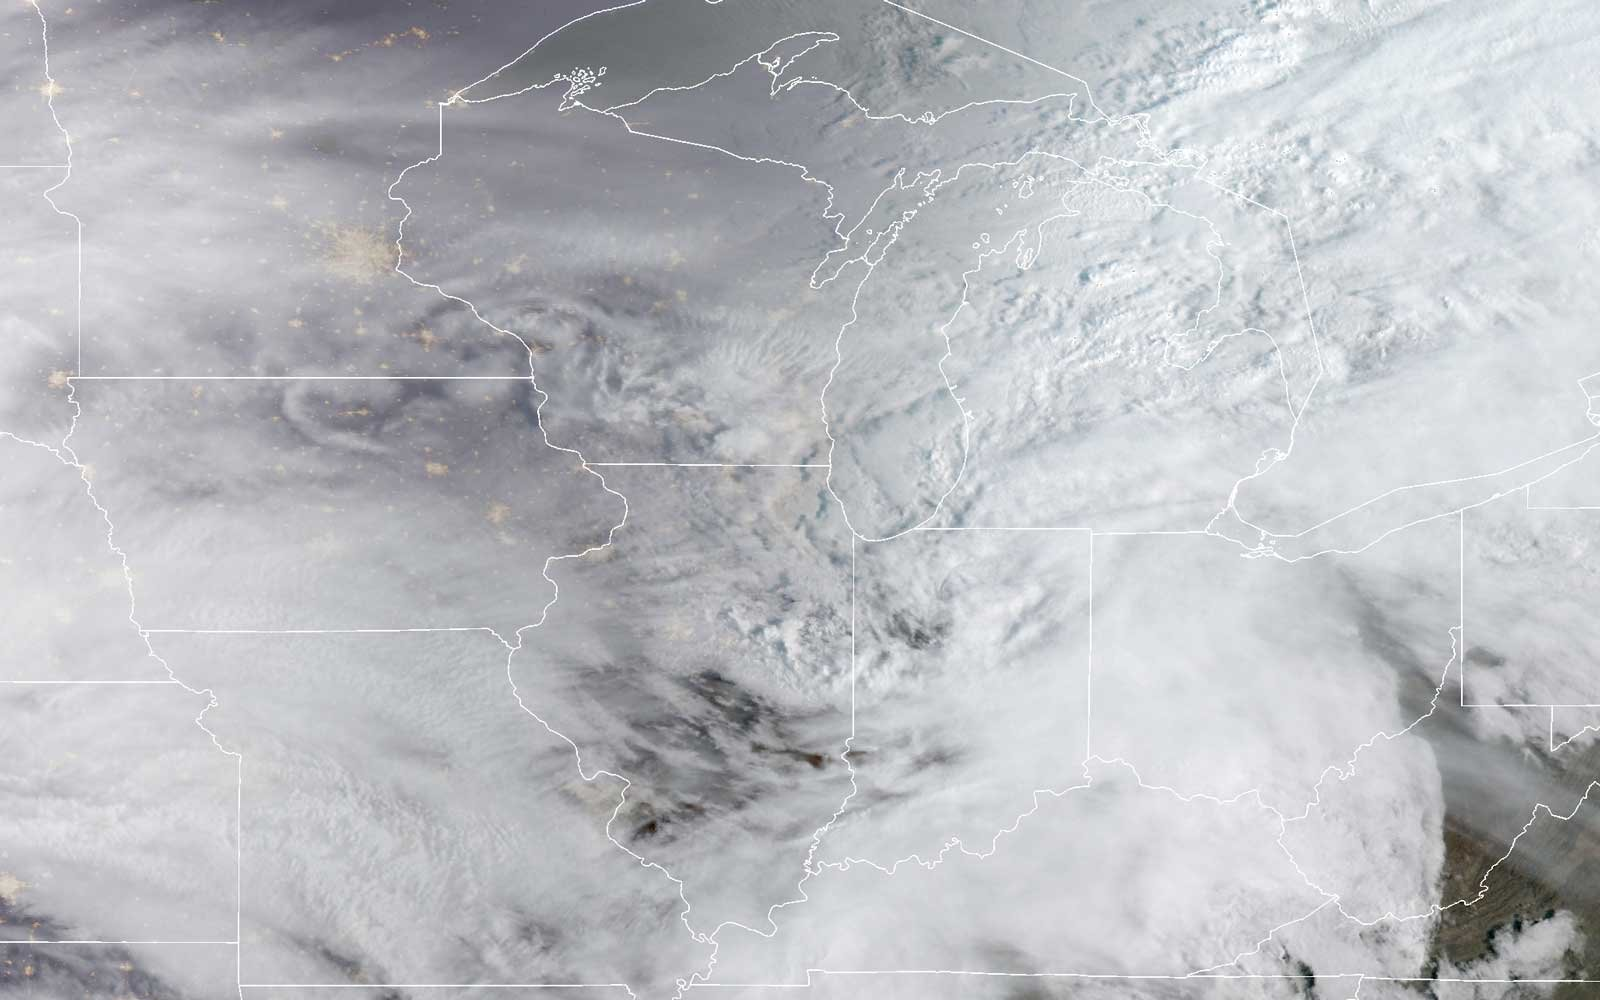 'Bomb Cyclone' brings snow, high winds to U.S. Plains states